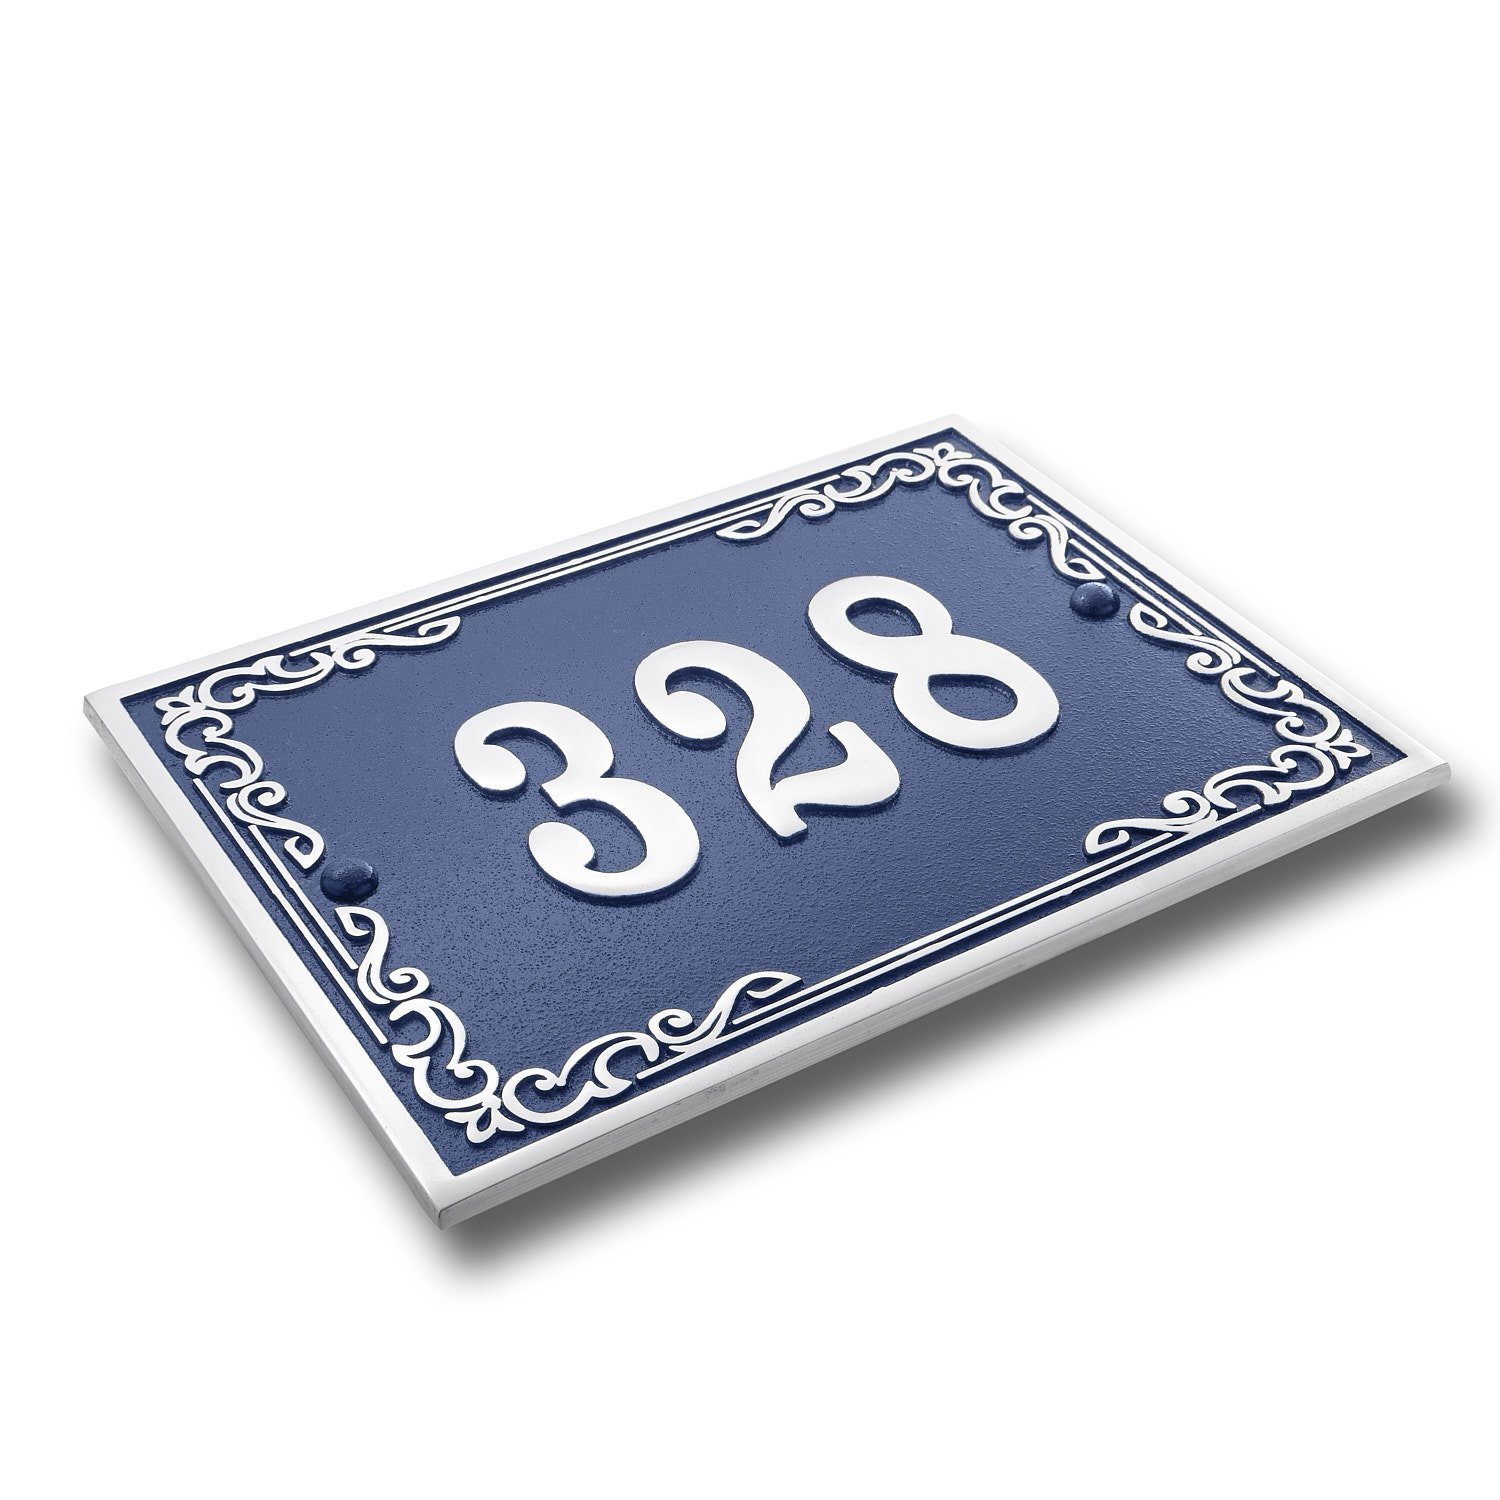 House Number Sign Traditional Vintage Style. Cast Metal Personalised Home Or Mailbox Plaque With Oodles Of Colour, Number And Letter Options. Handmade In England By The Metal Foundry Just For You